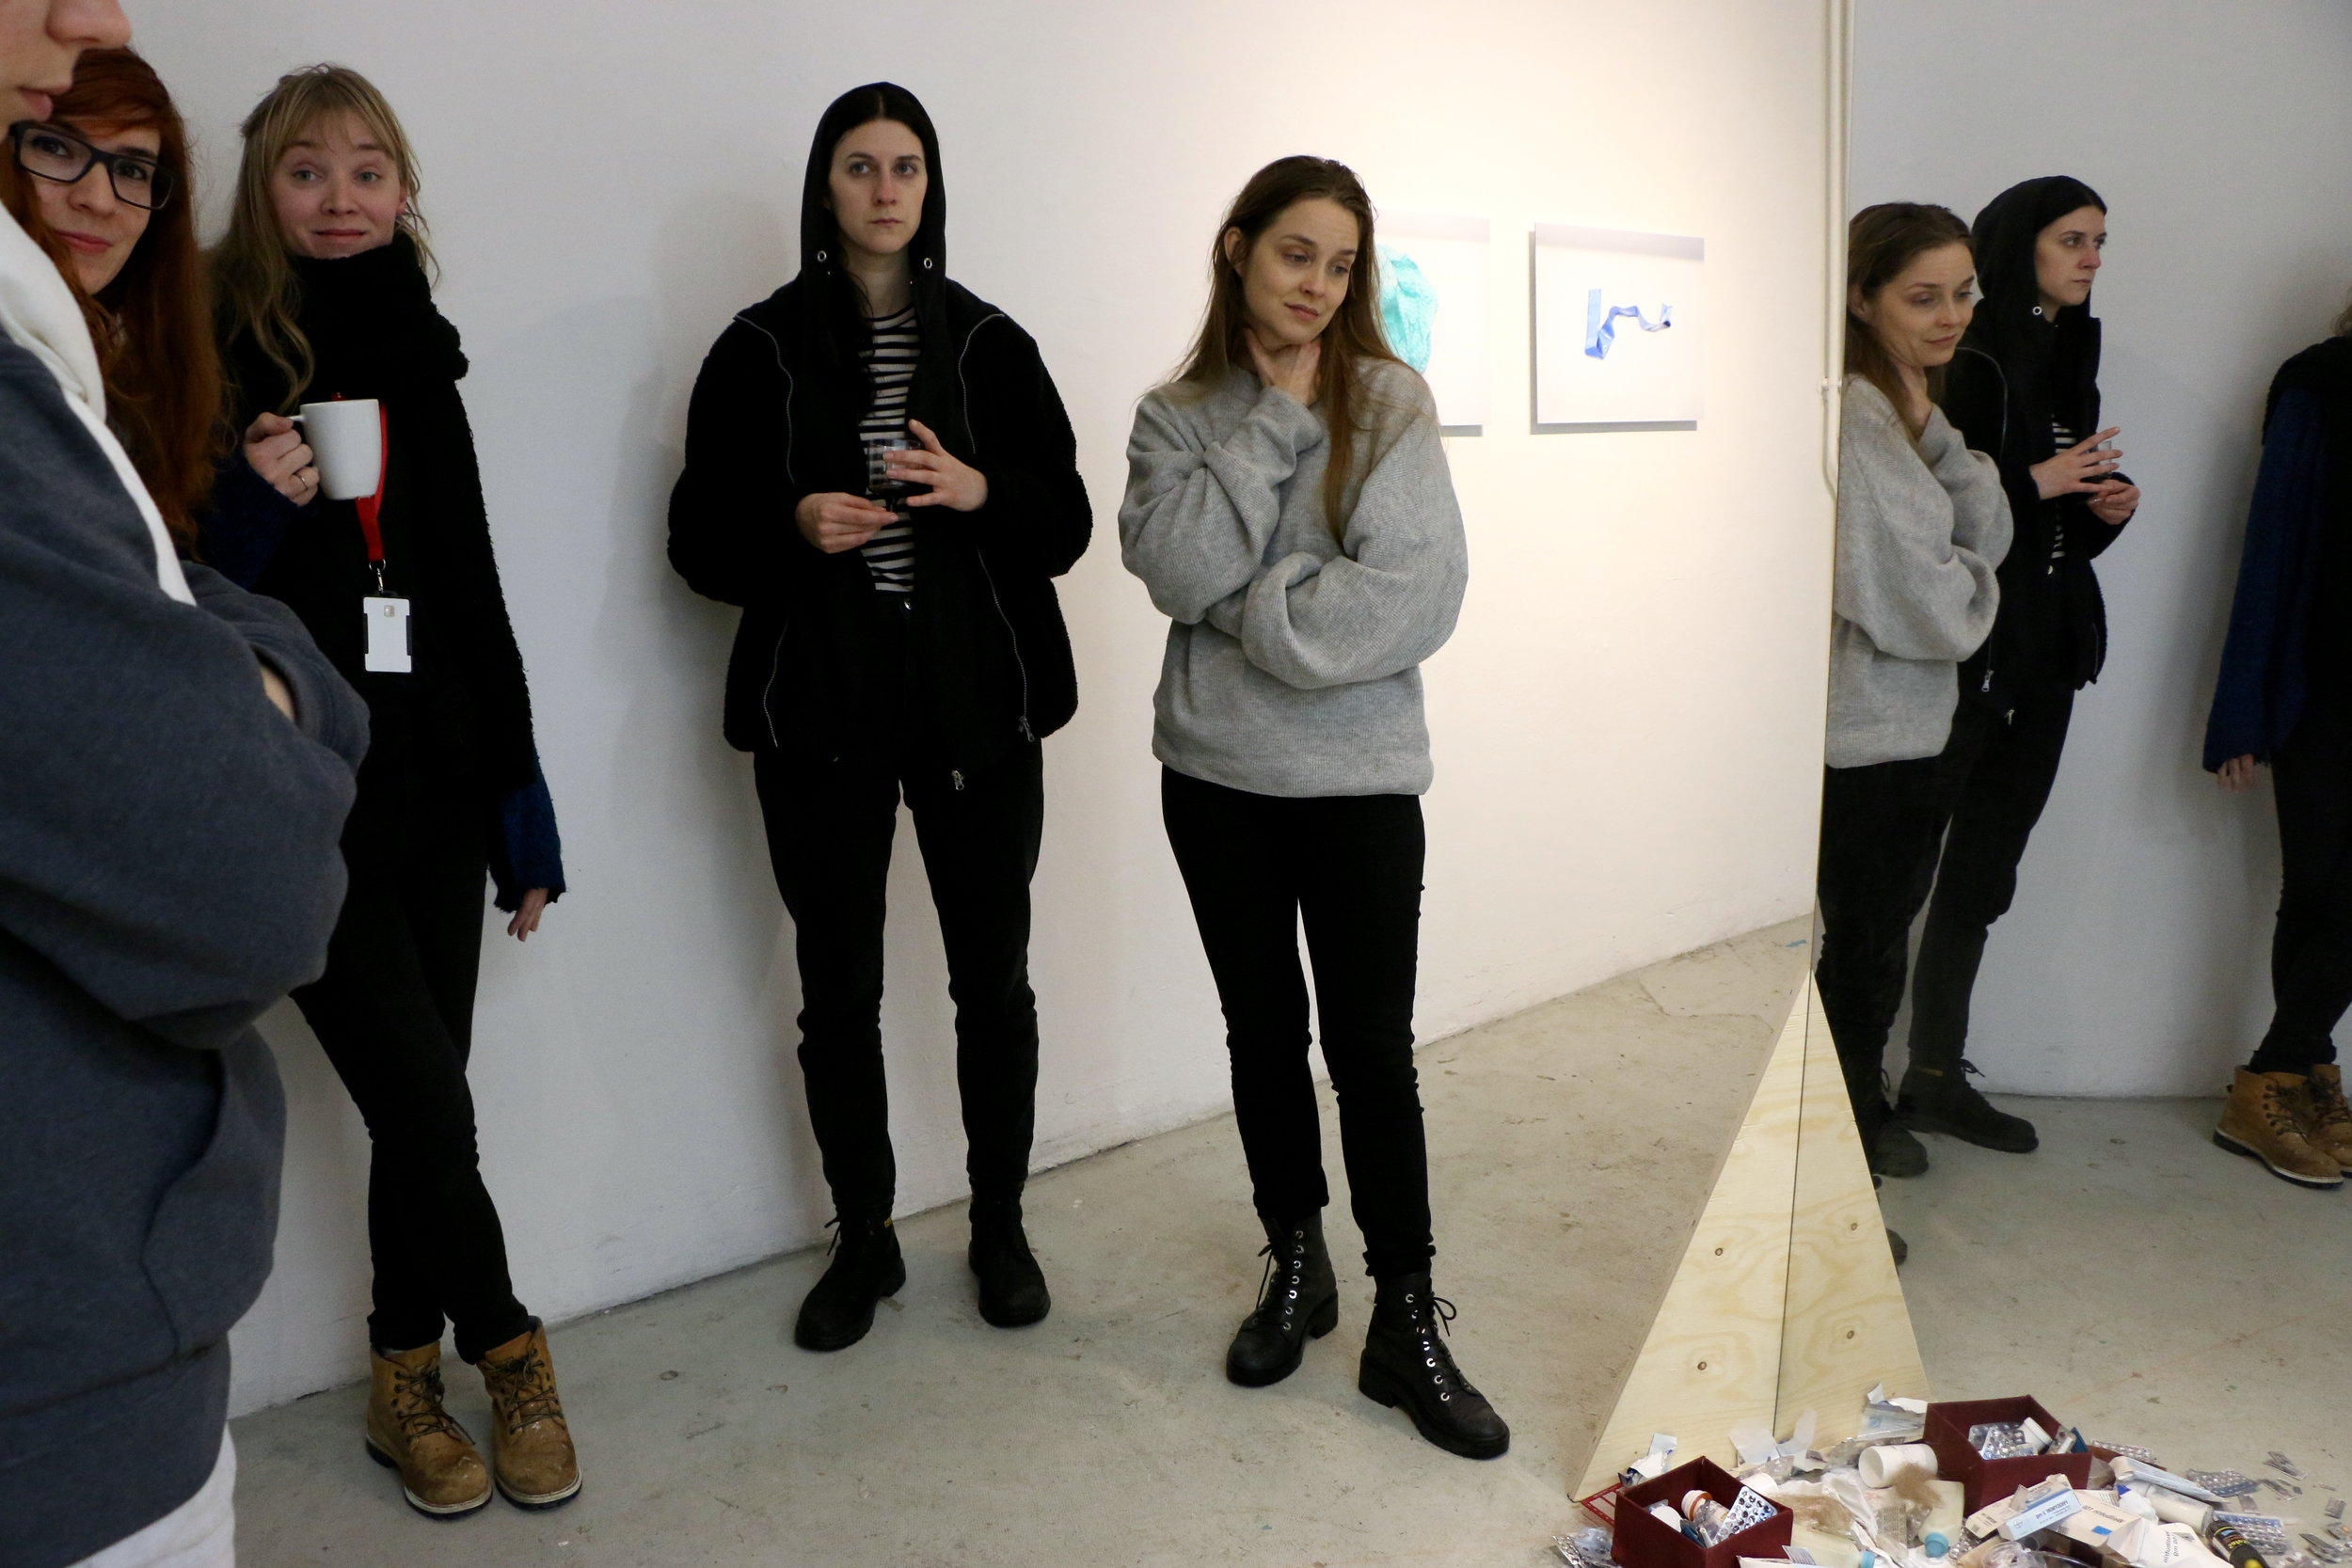 A private audience with Victoria Verseau - touring  Through The Looking Glass' (2016). Curated by Alba Beaz, and hosted by Hangmen Projects